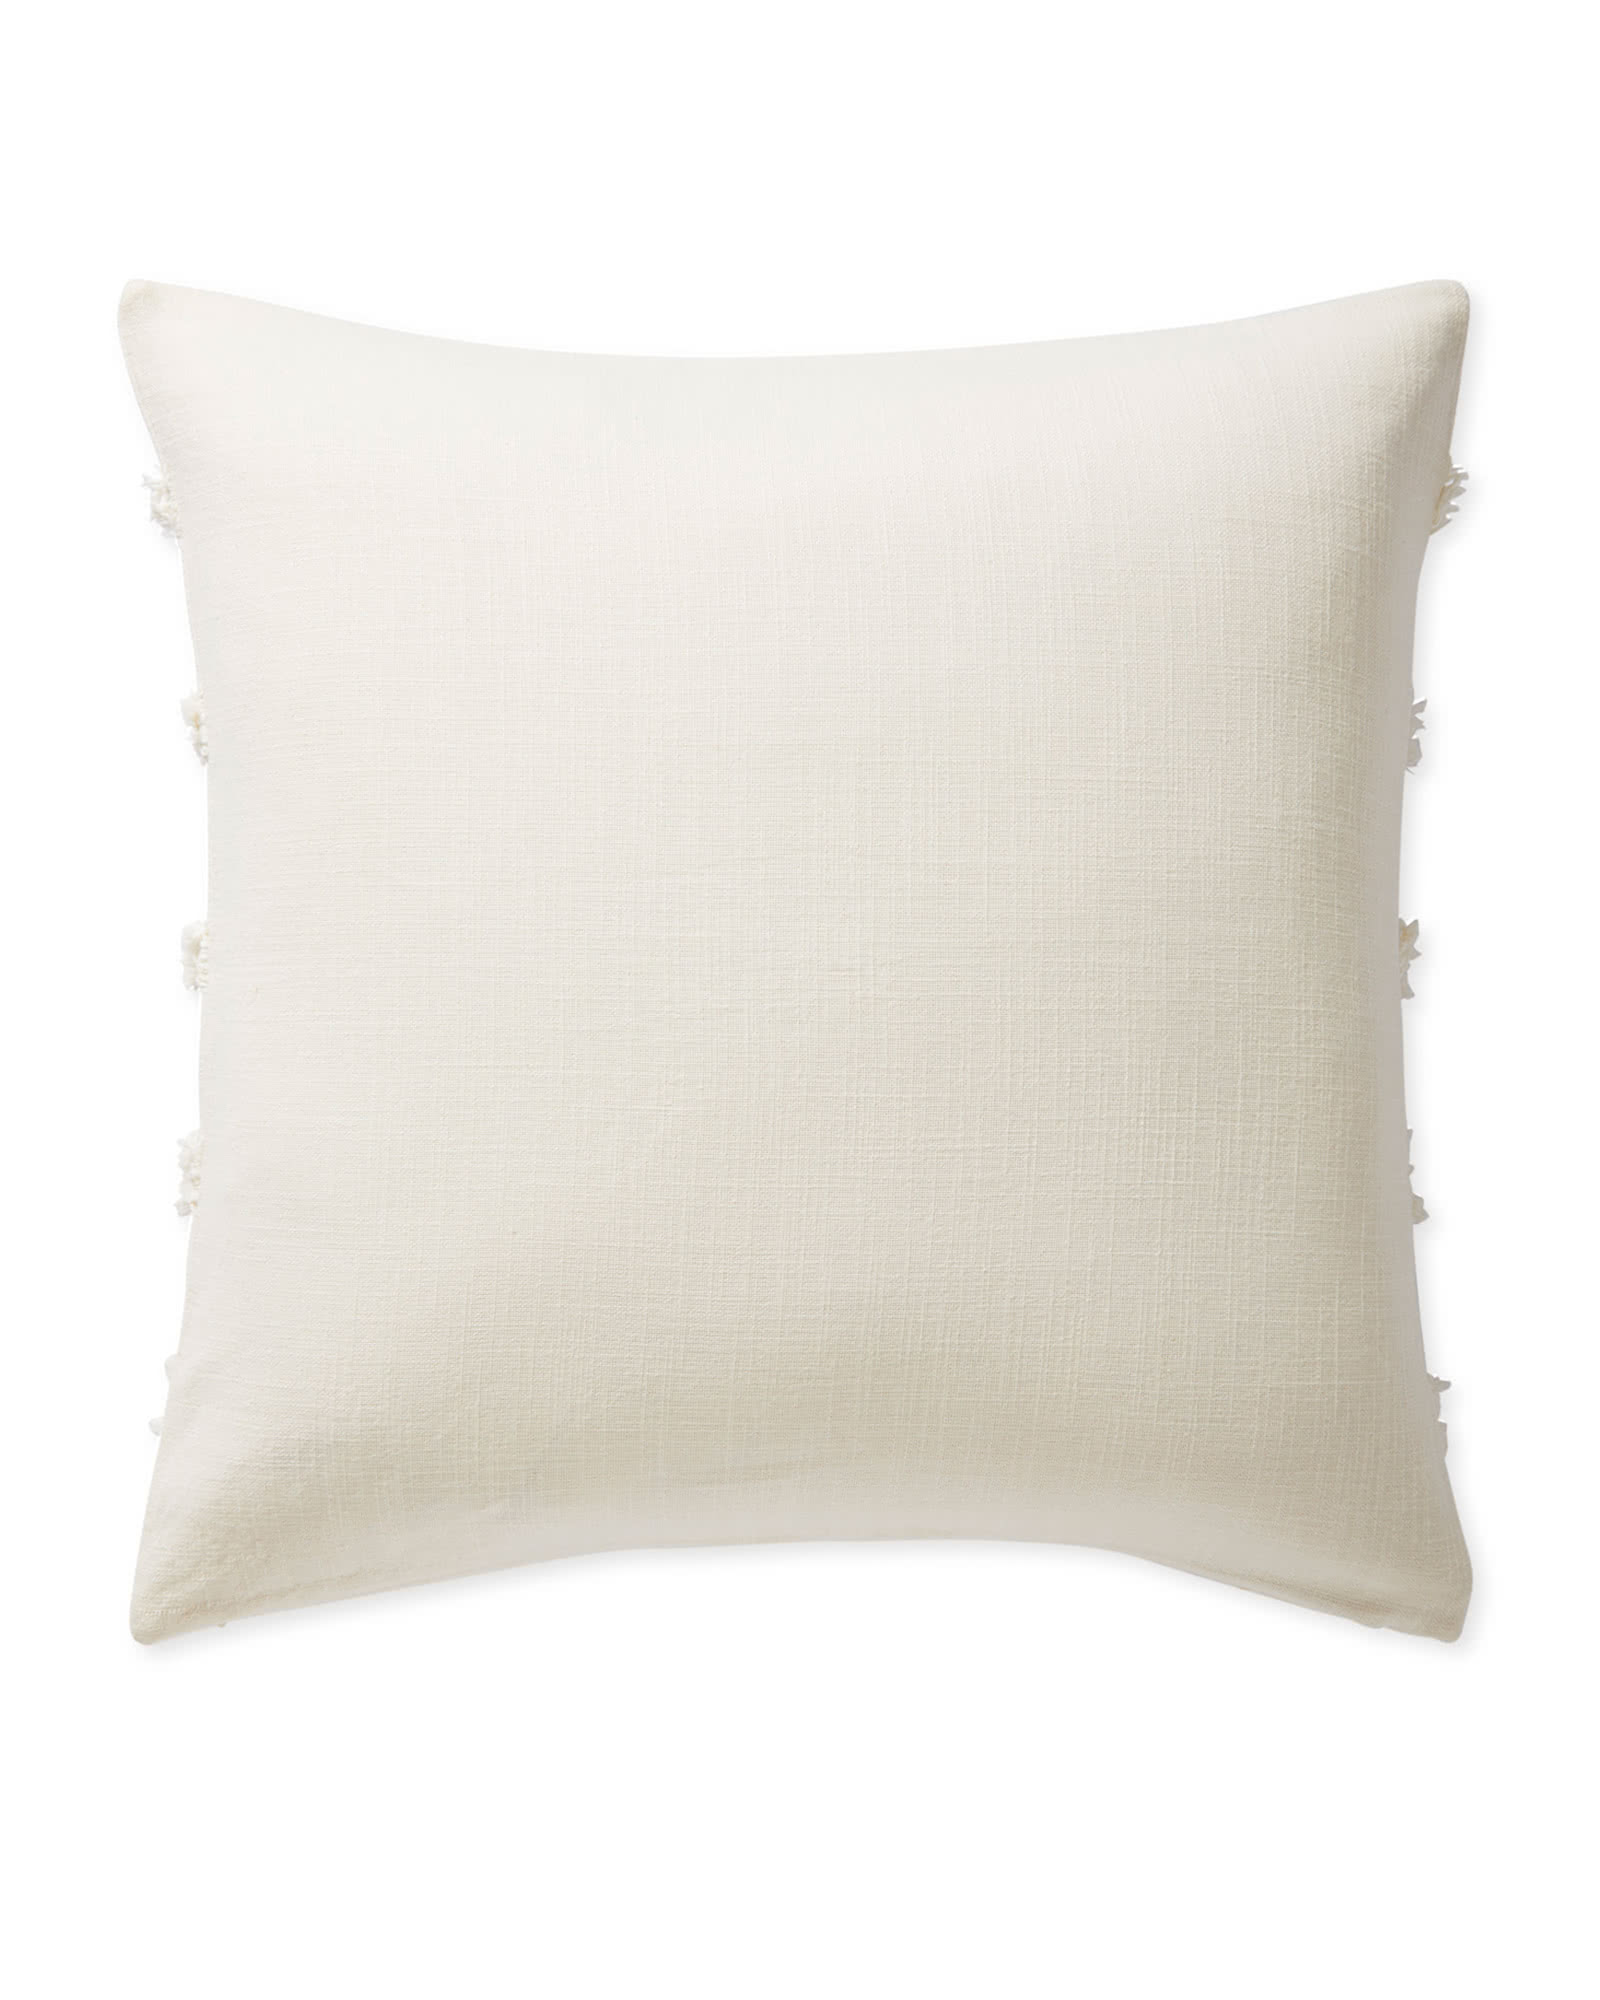 Cuesta Pillow Cover, Ivory